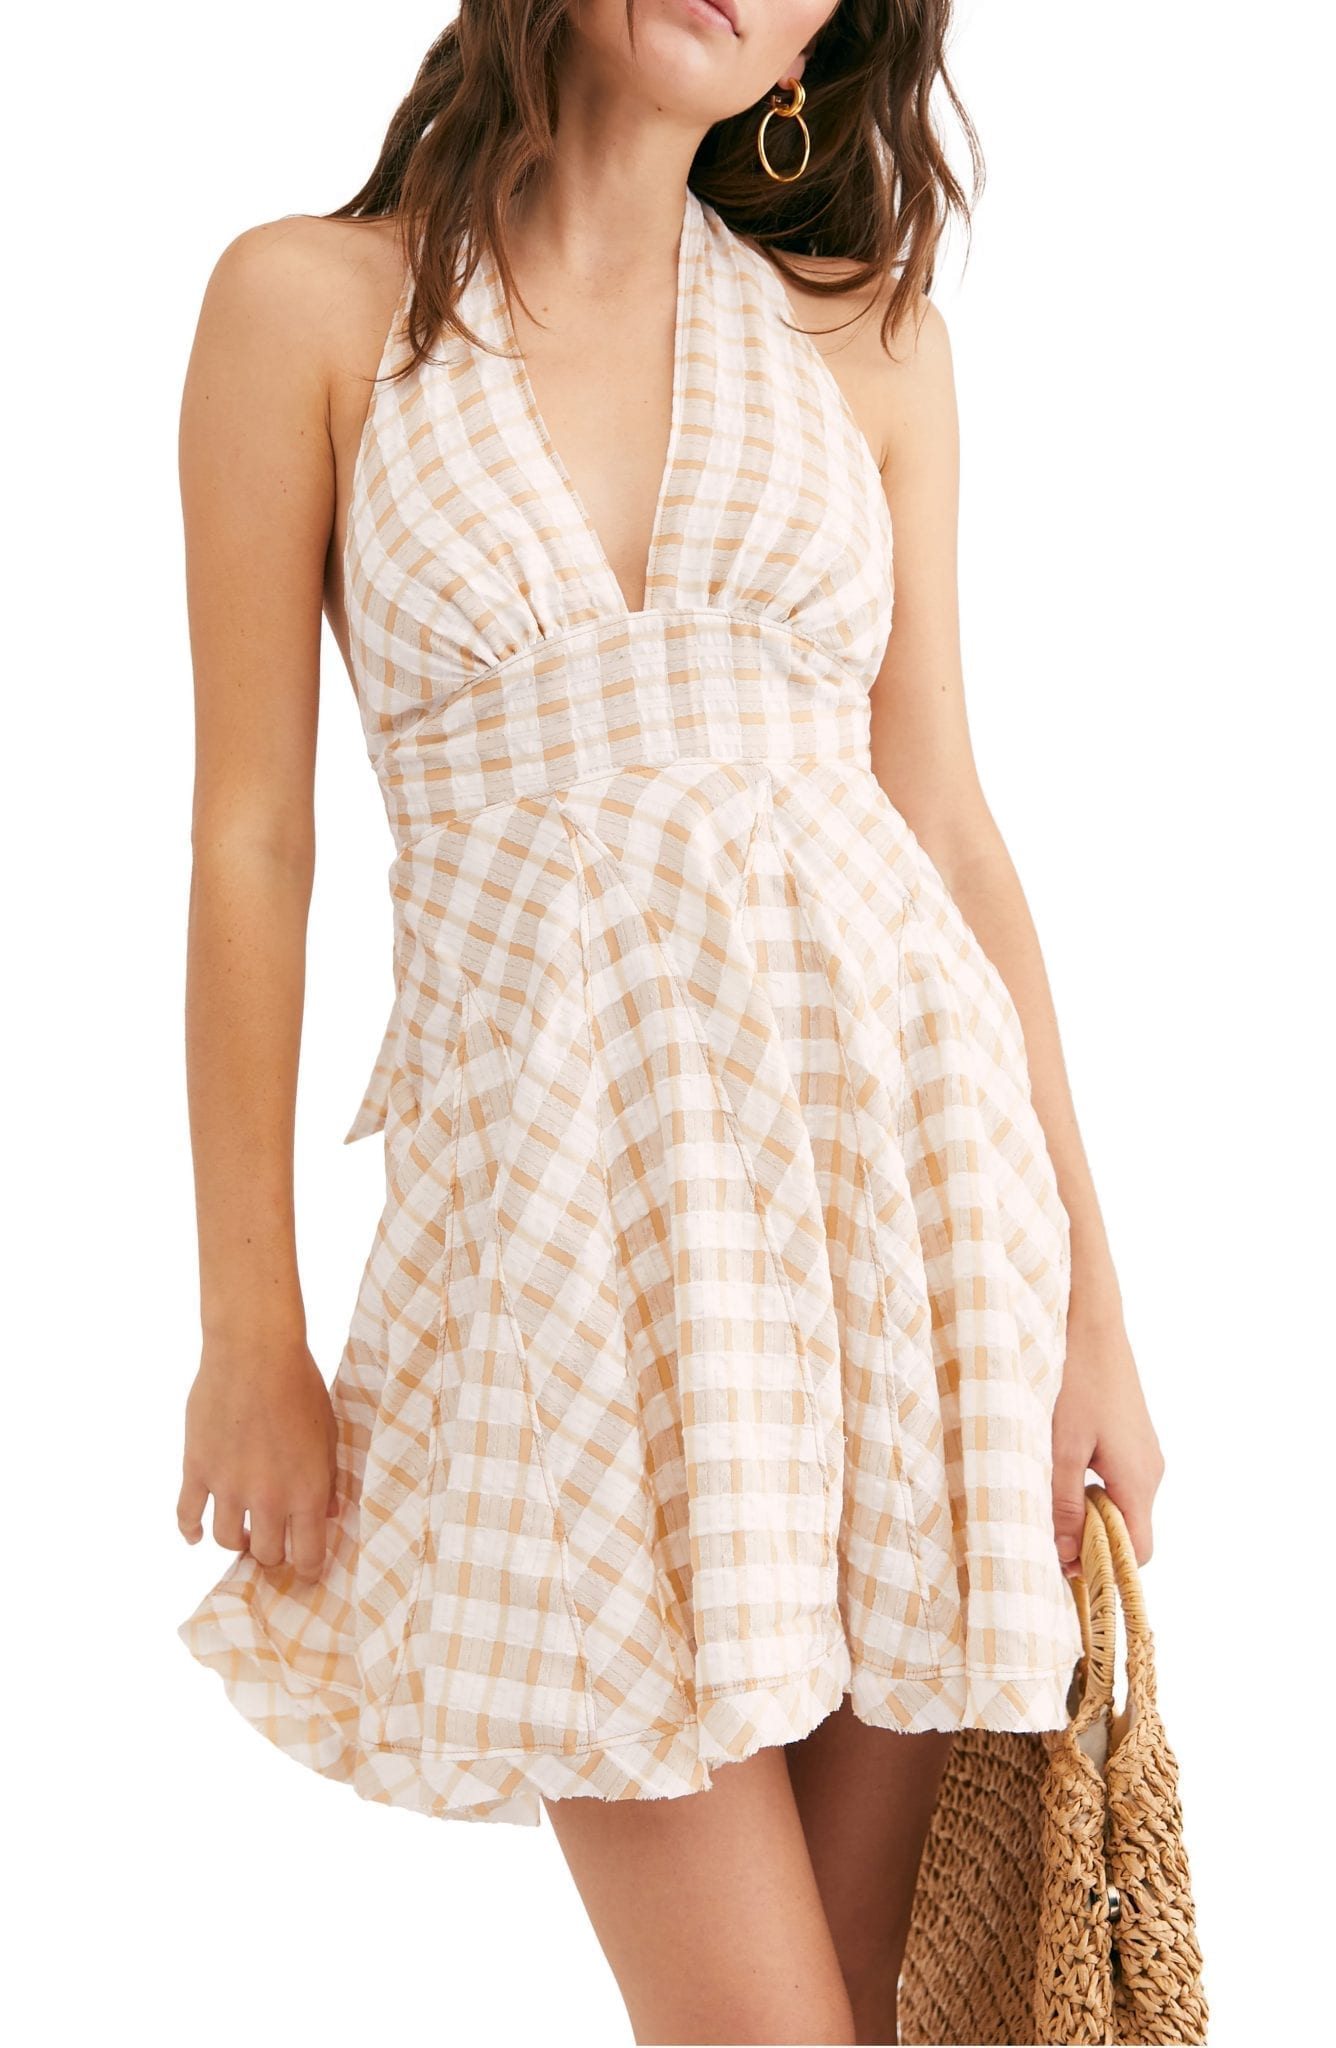 FREE PEOPLE Do the Twist Seersucker Halter Sun Dress